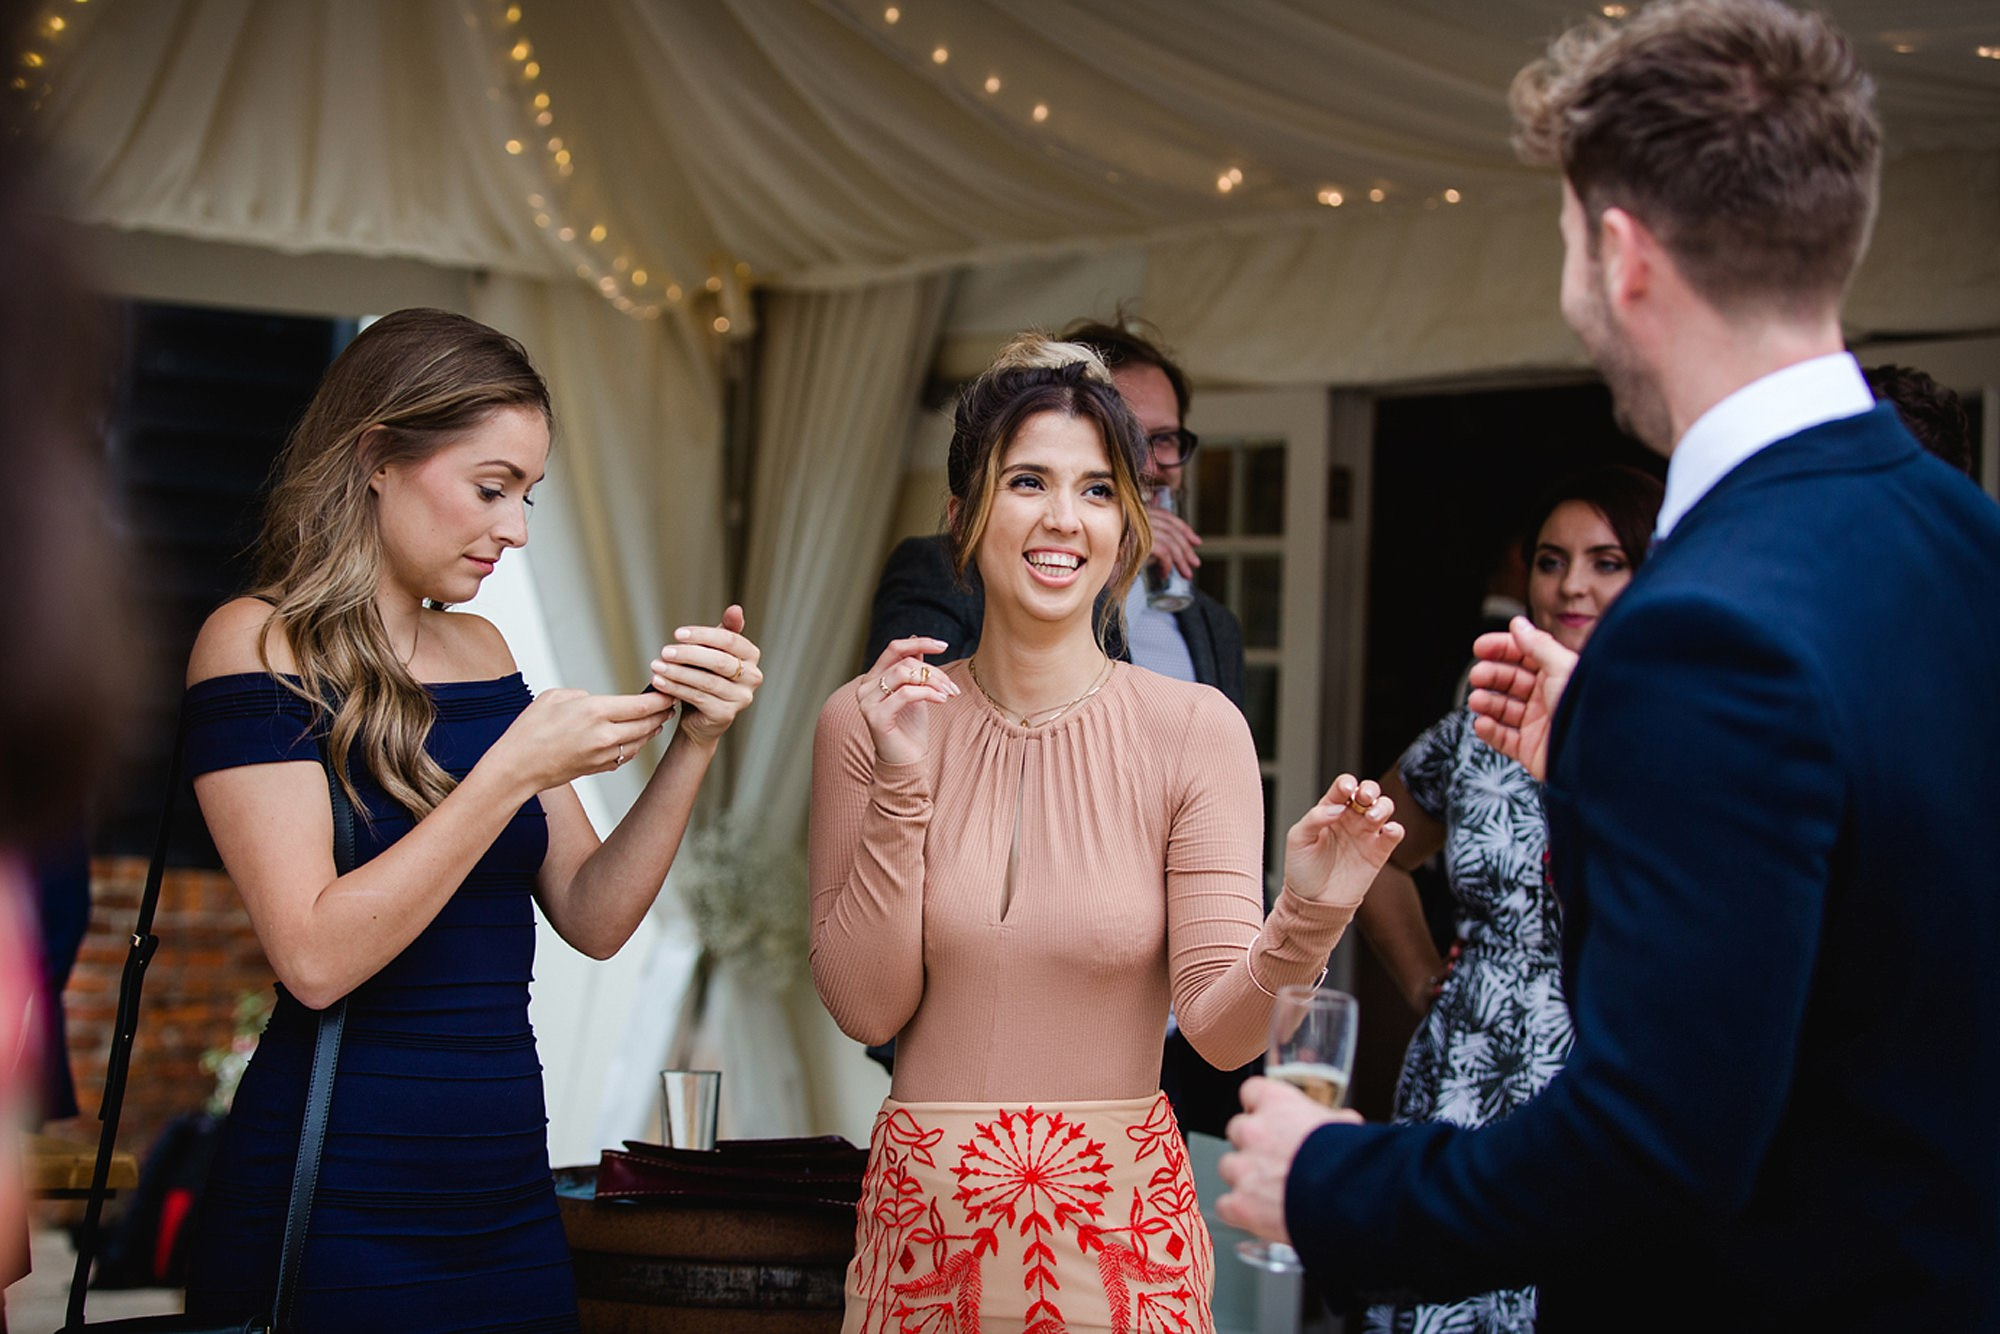 Marks Hall Estate wedding photography laughing wedding guest